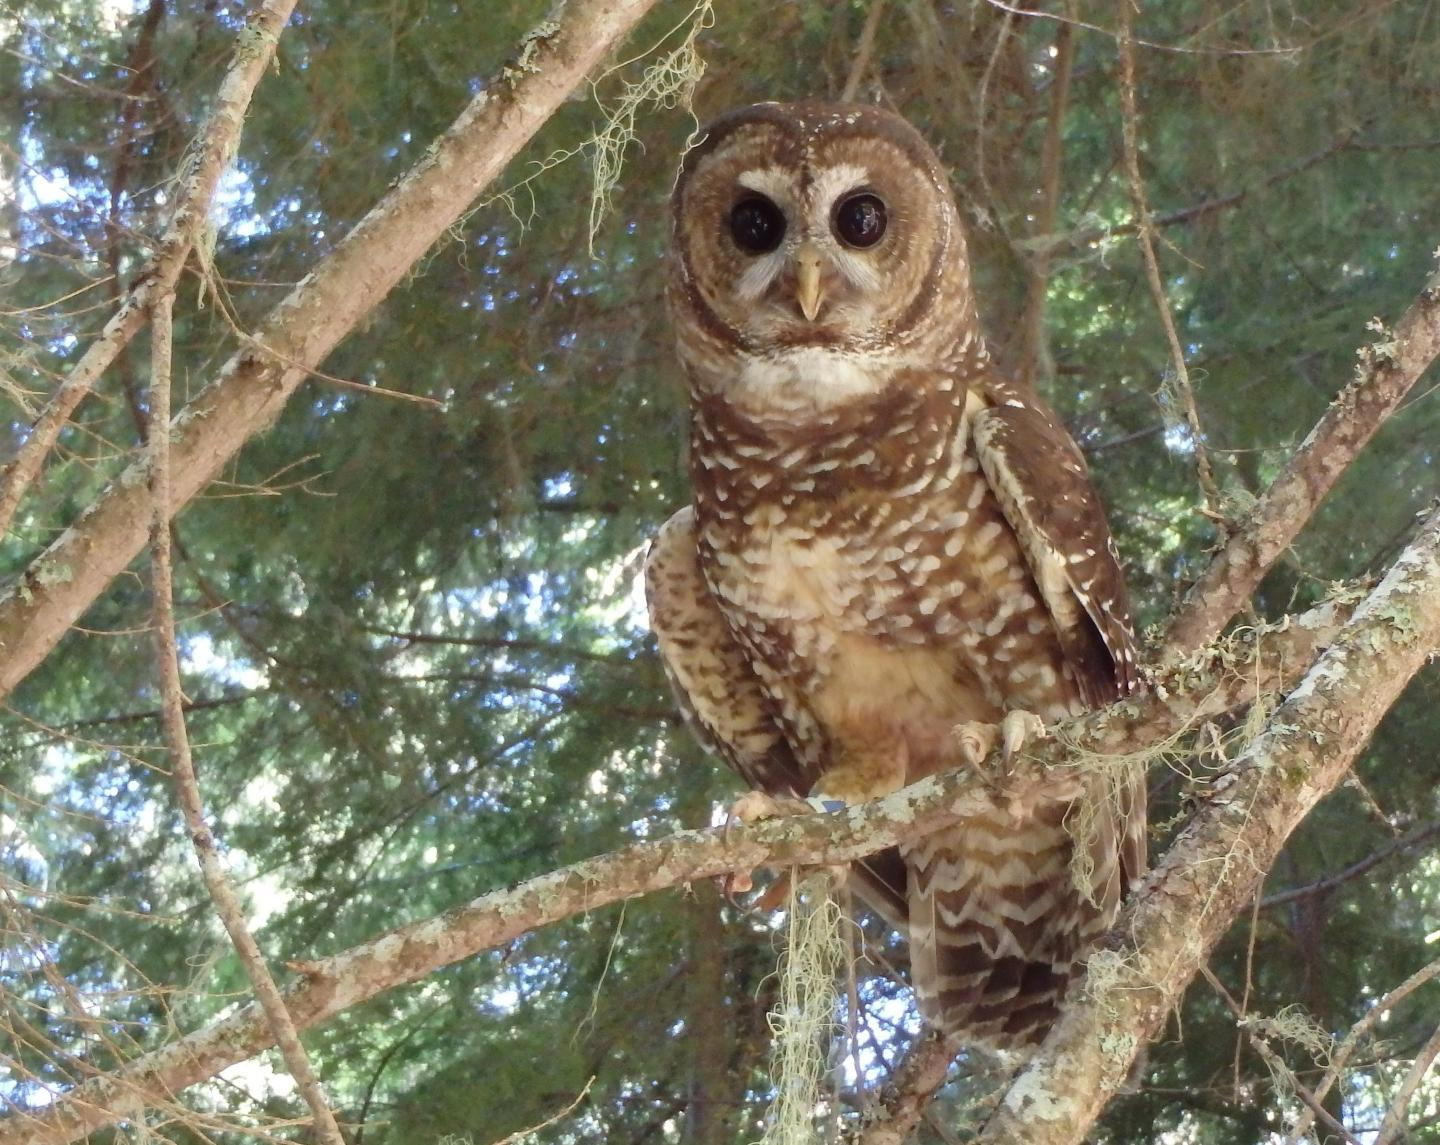 Model explains barred owls' domination over northern spotted